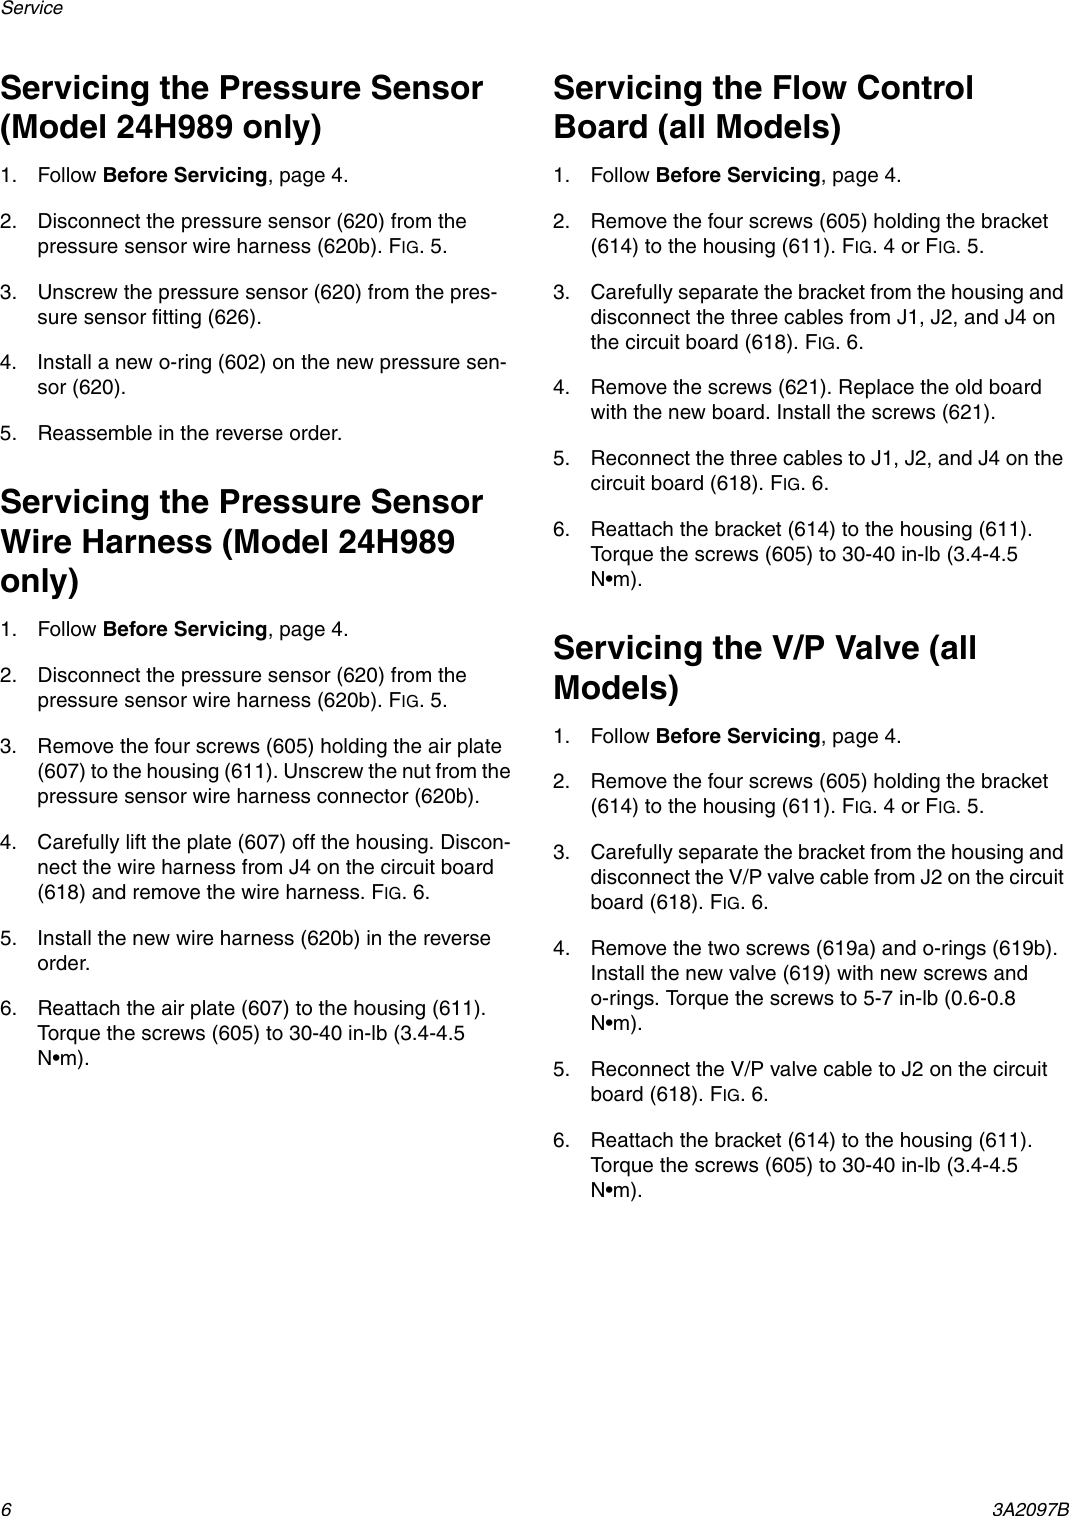 Graco 3a2097b Instructions Parts Manual For Flow Control Circuit Board Wire Harness Page 6 Of 12